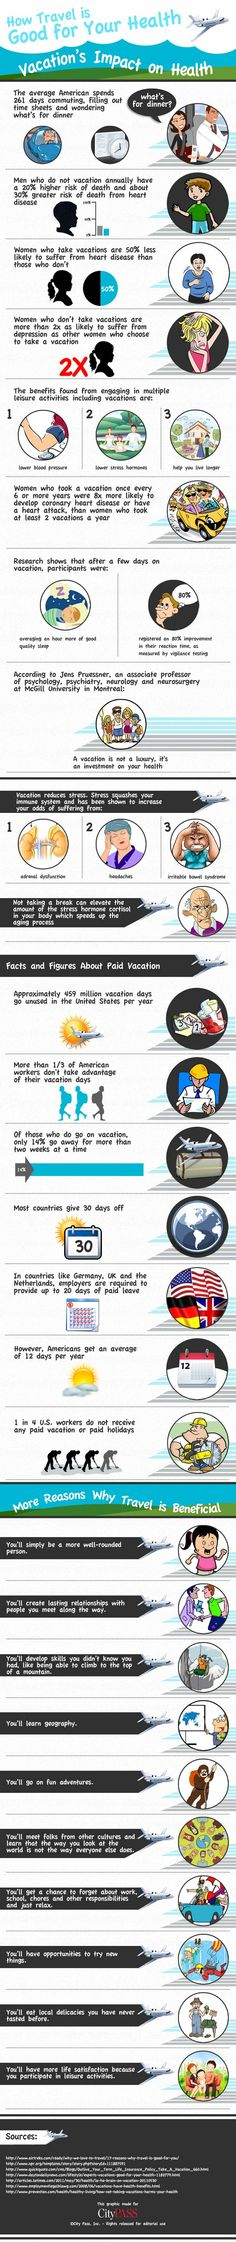 CityPASS infographic: How Travel is Good for Your Health